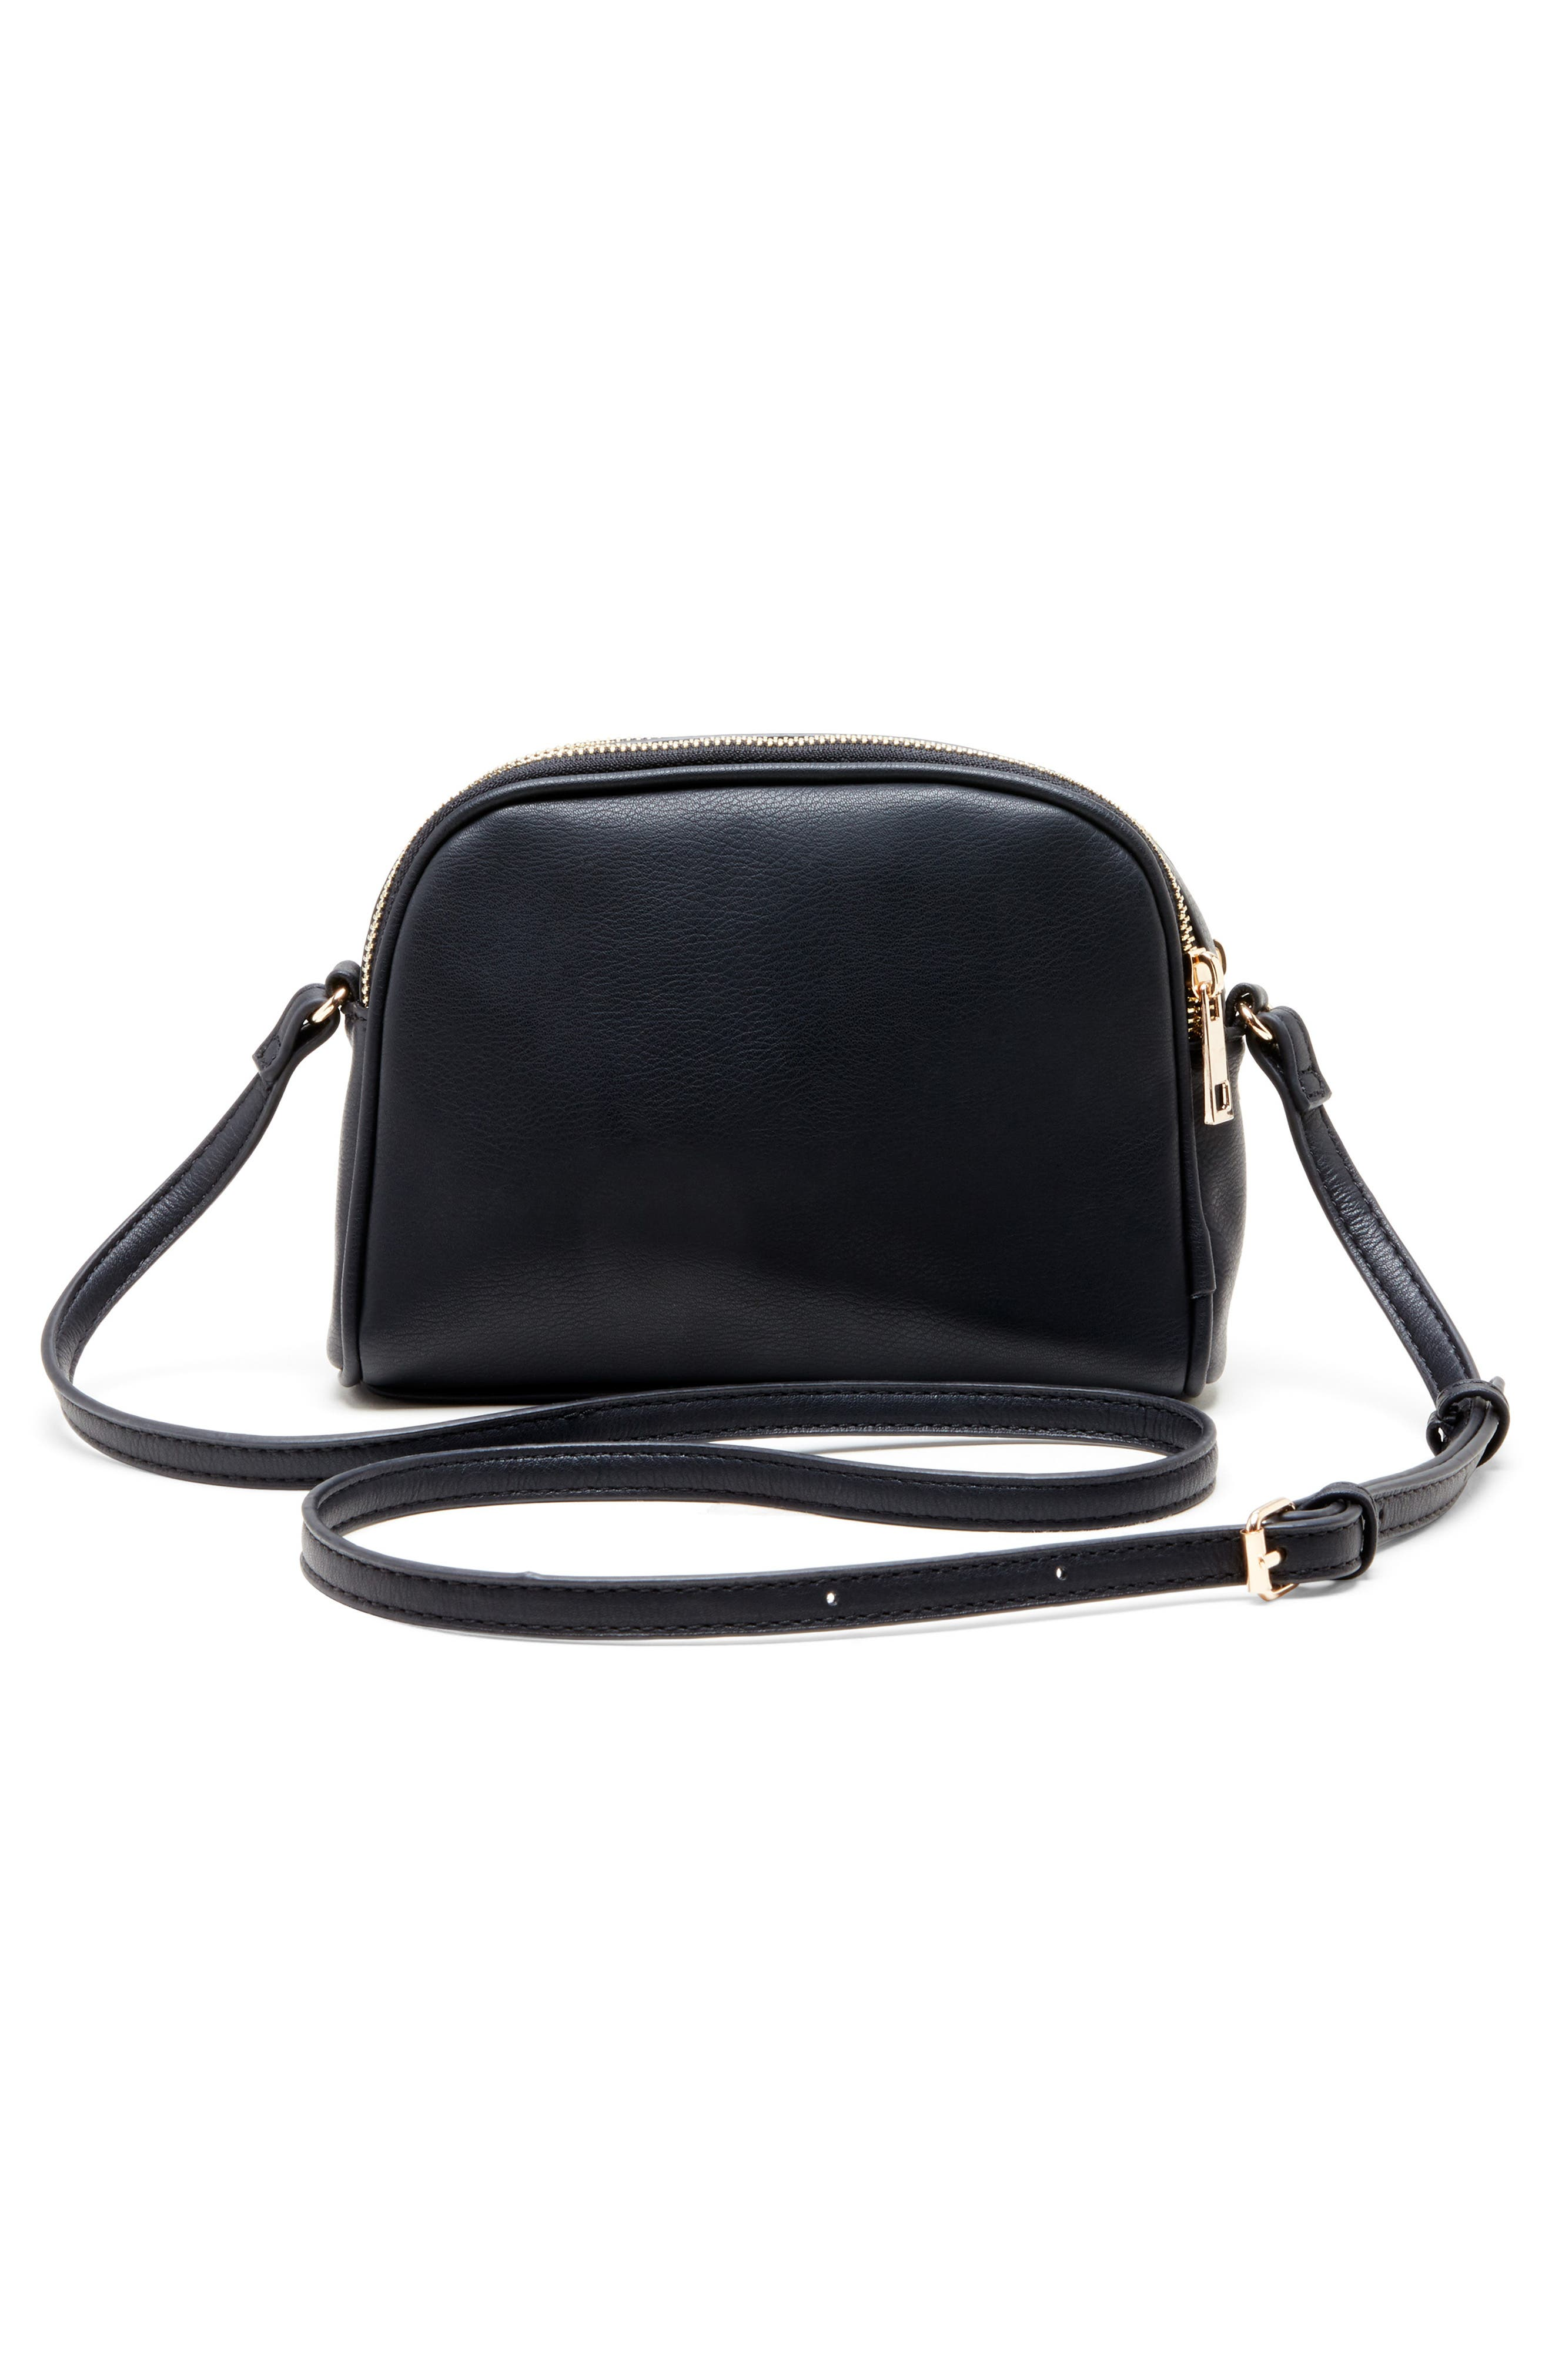 Linza Faux Leather Crossbody Bag,                             Alternate thumbnail 2, color,                             BLACK/ CREAM